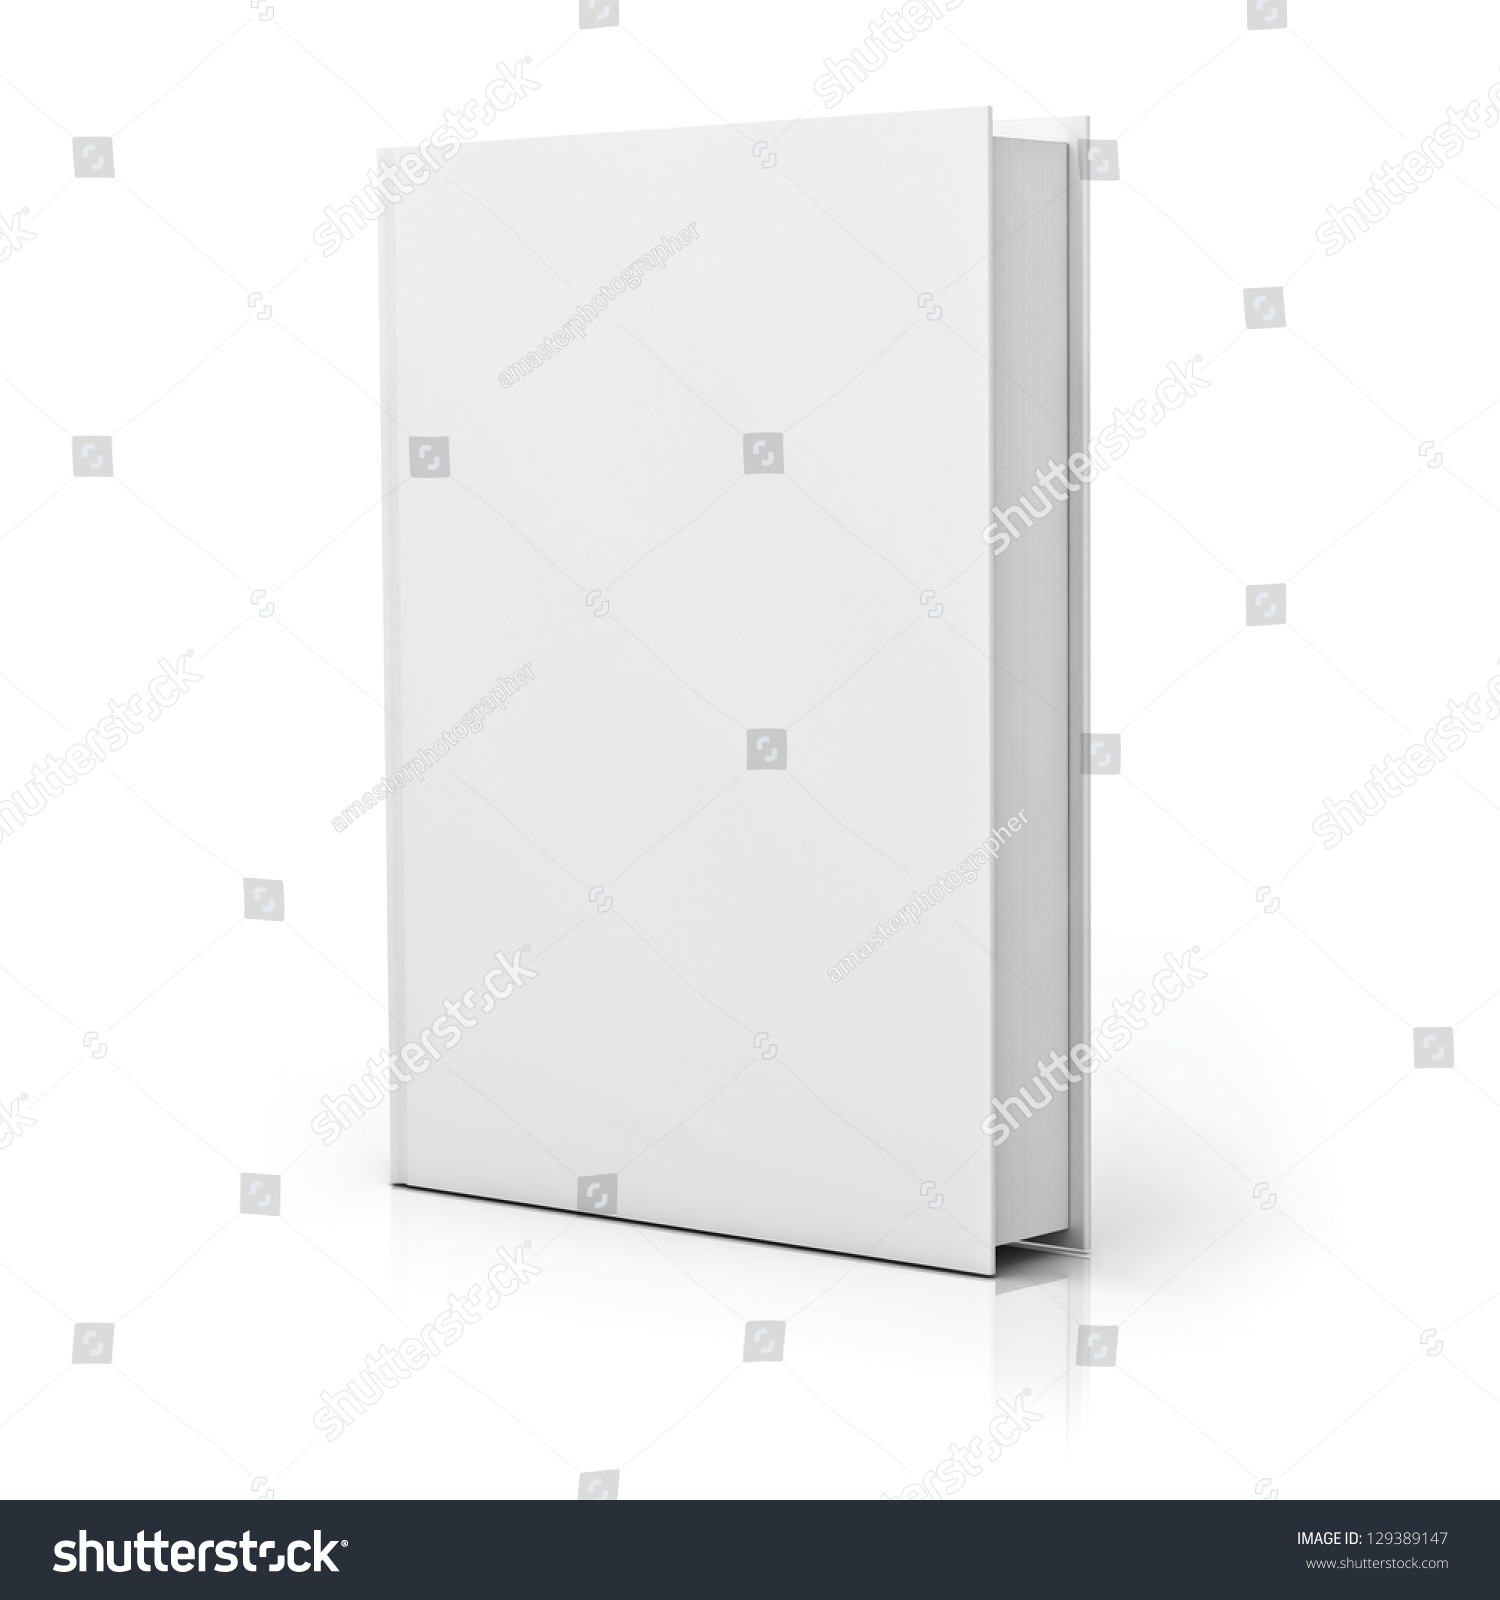 Book Cover White Background ~ Blank book cover over white background stock illustration